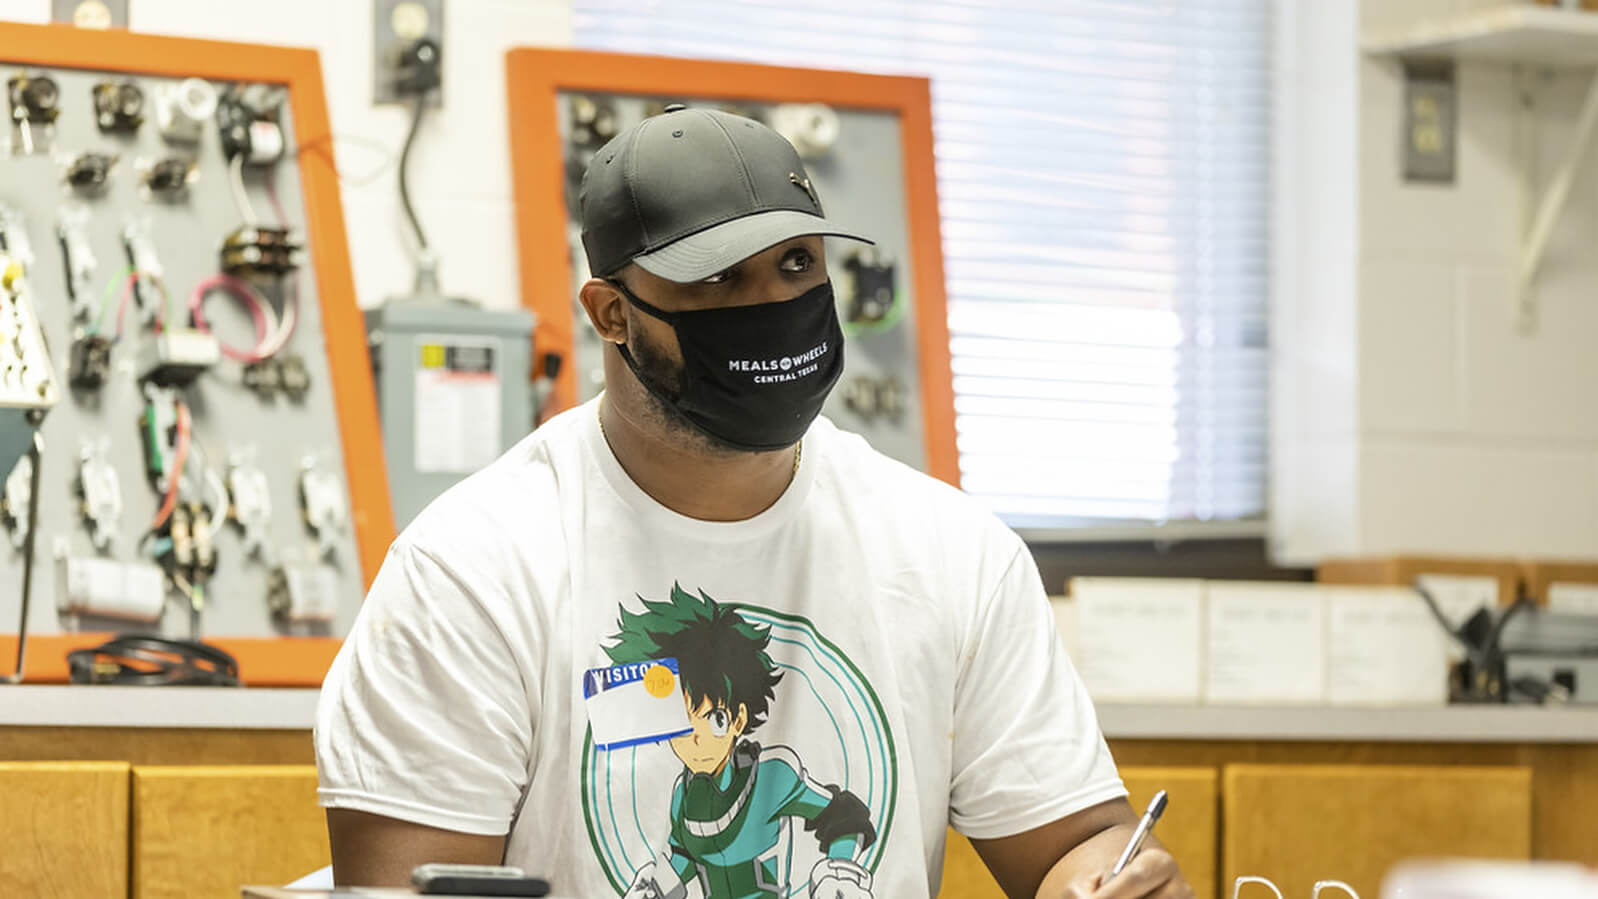 Kevin Jenkins takes notes during a class while wearing a mask.